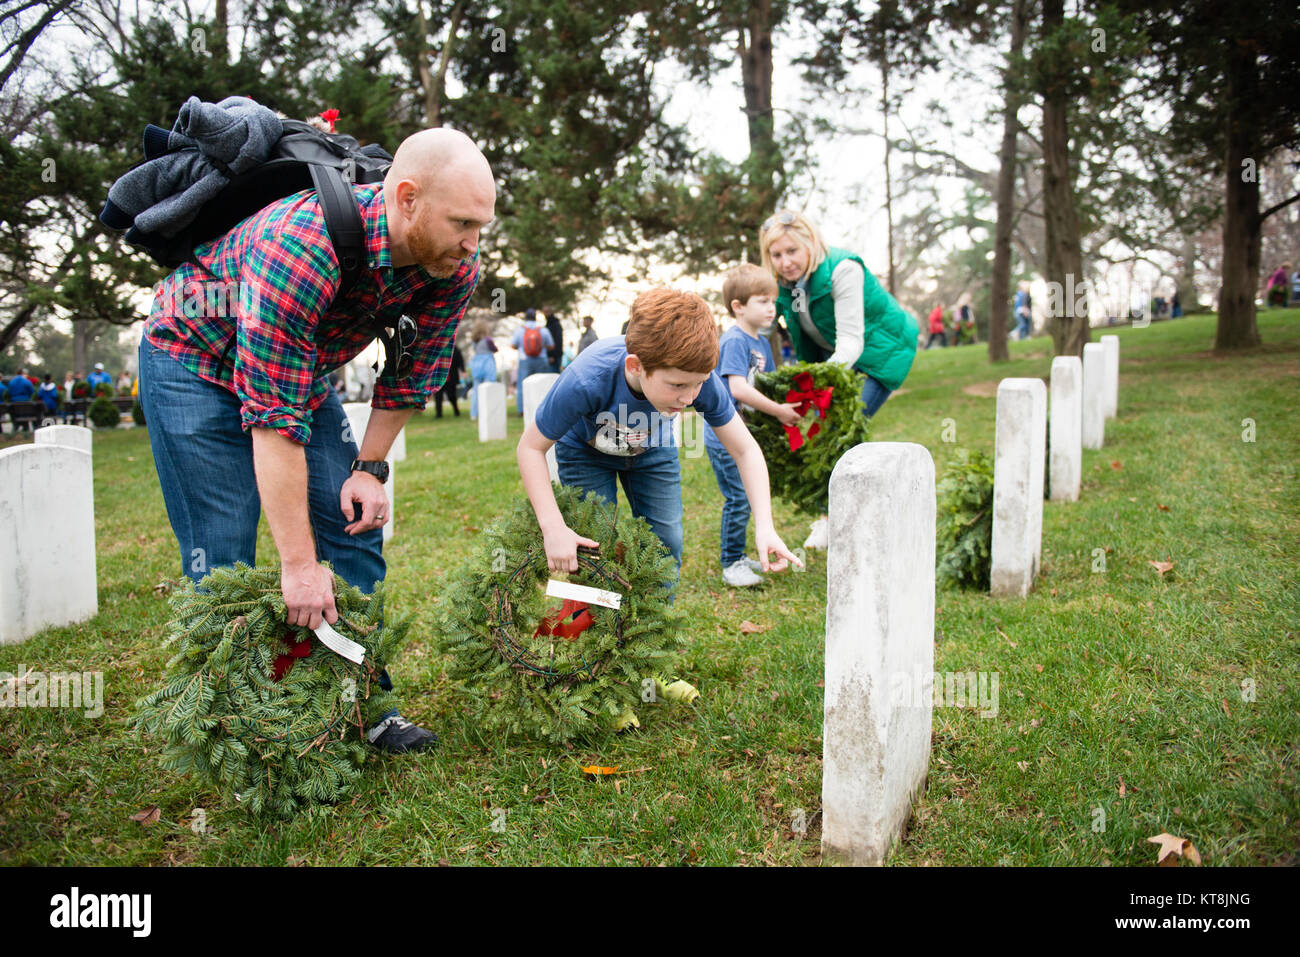 From the left, Kevin; Thomas, 8; Ben, 5; and Bethany Roshak, all from Ashburn, Va., place wreaths on headstones - Stock Image